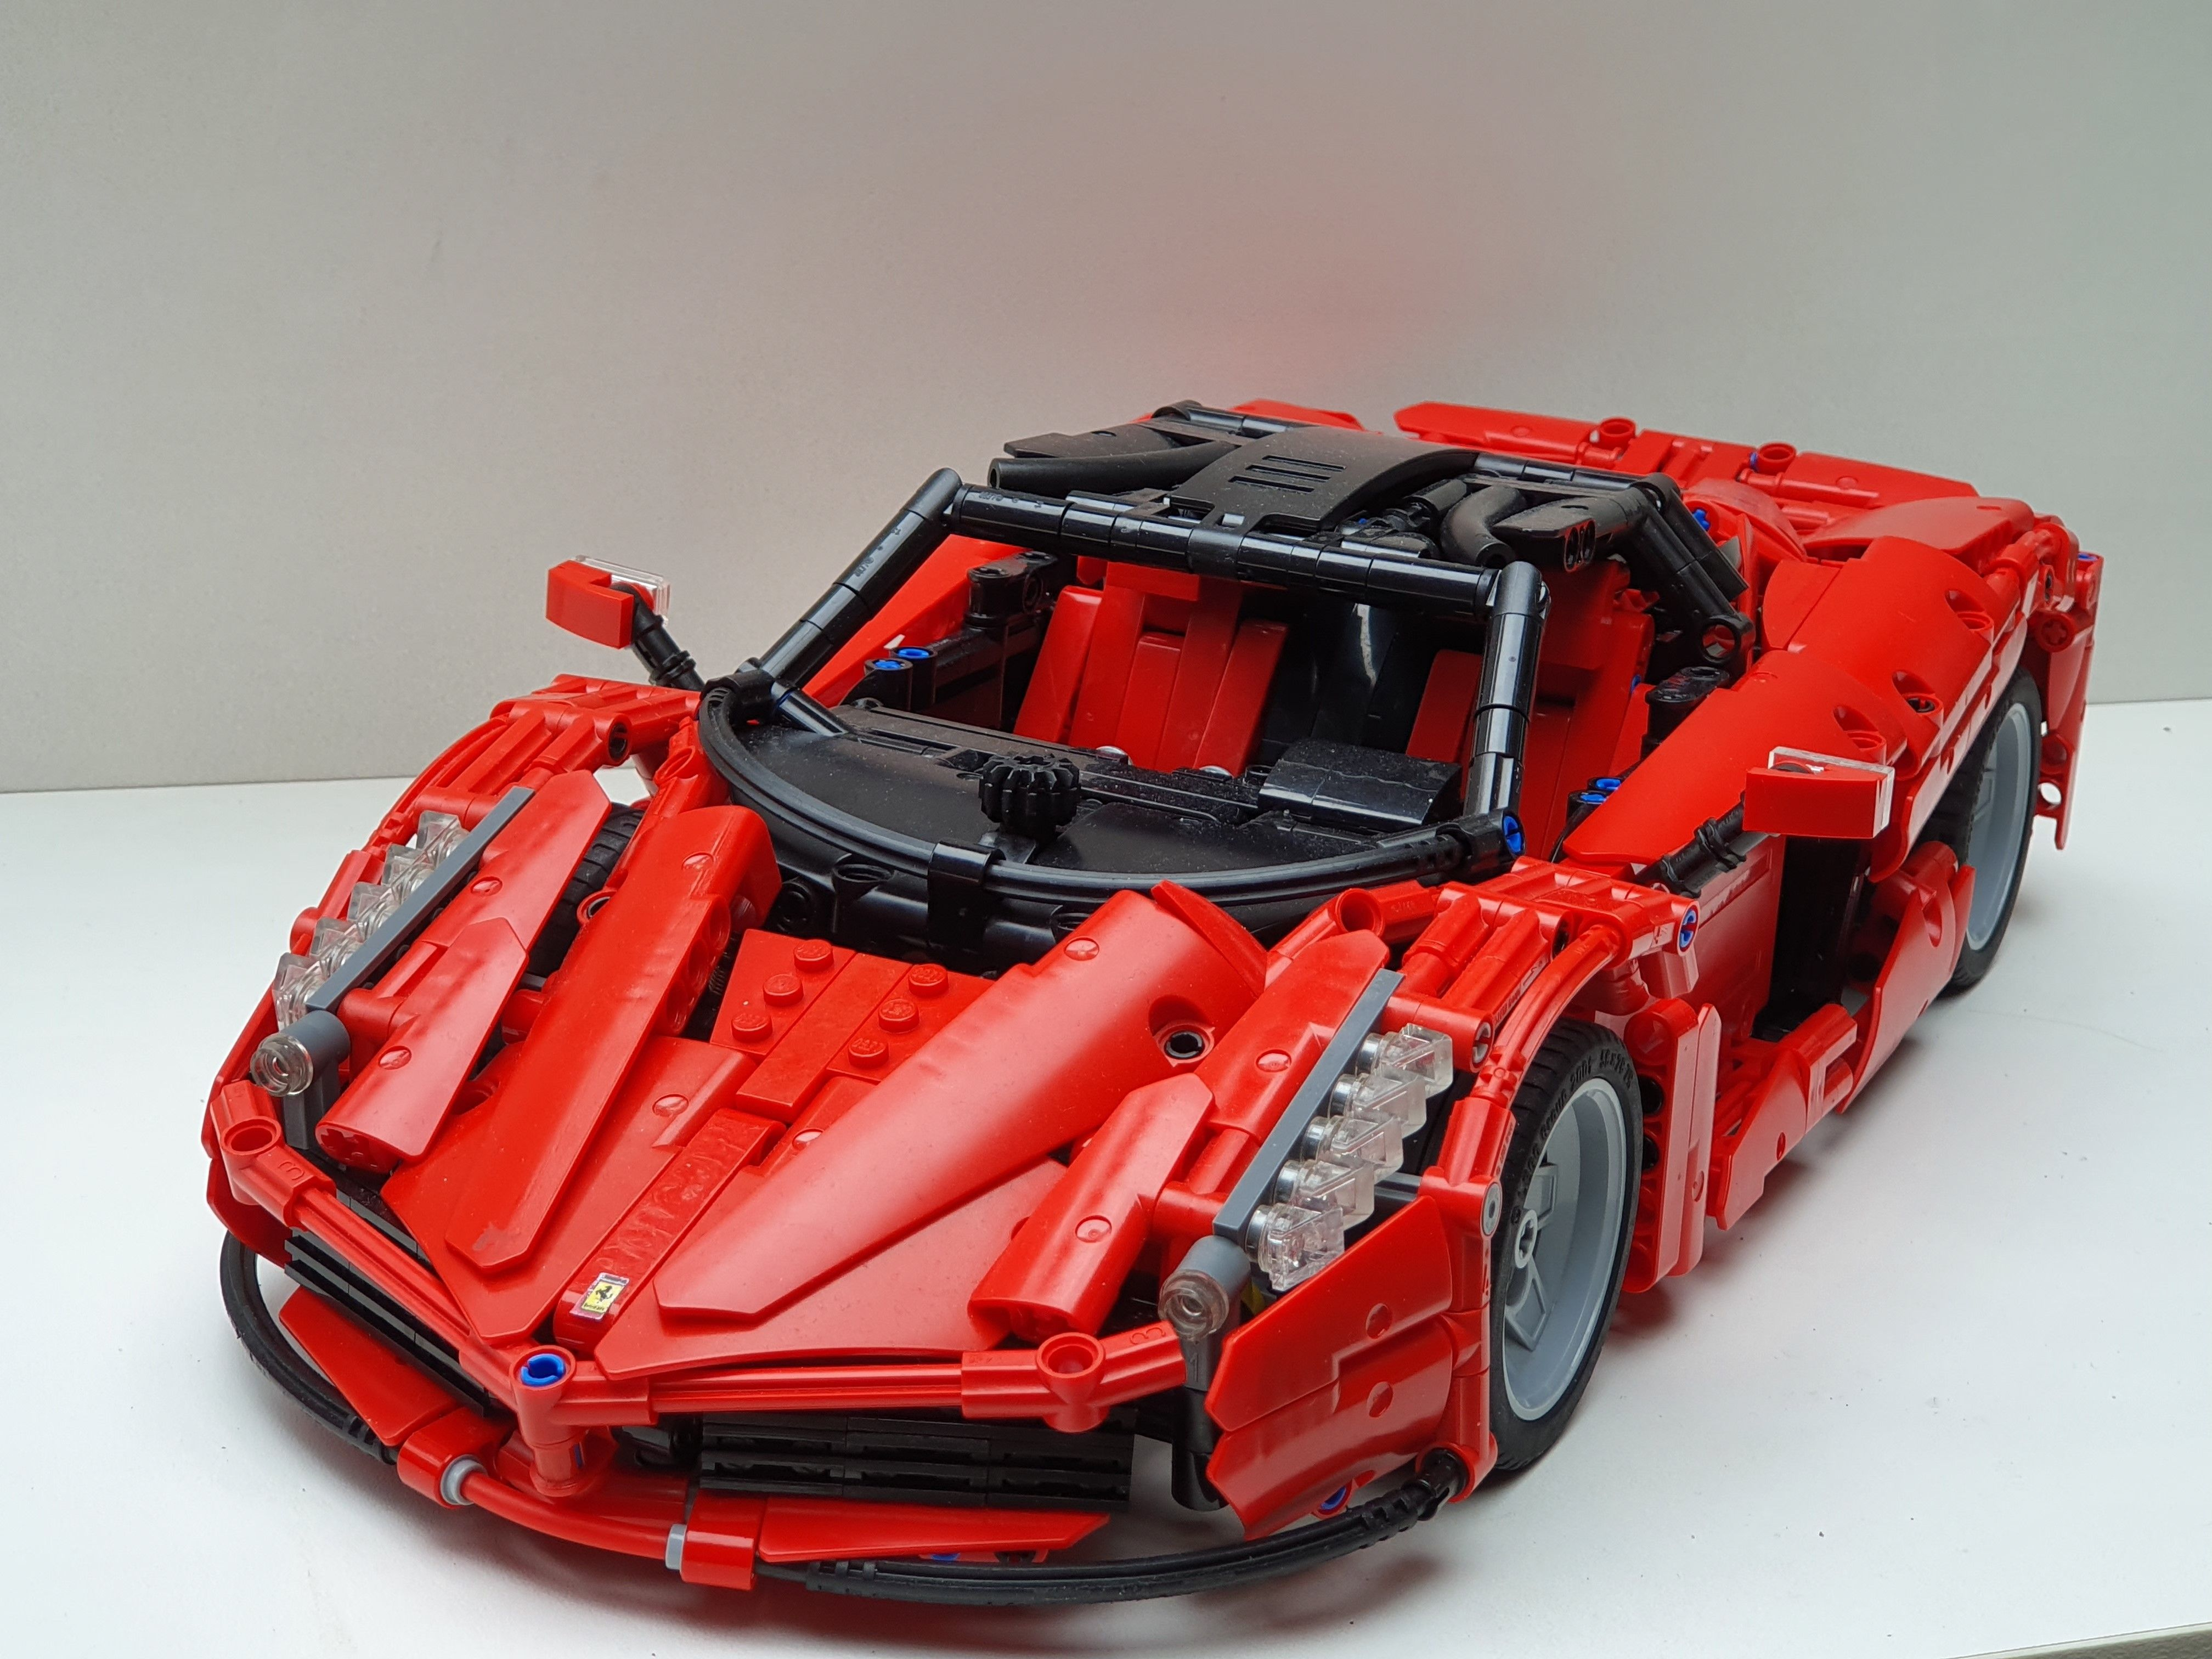 Moc Ferrari Laferrari 1 11 Hypercar W Instructions Lego Technic And Model Team Eurobricks Forums Lego Cars Lego Technic Lego Motorbike